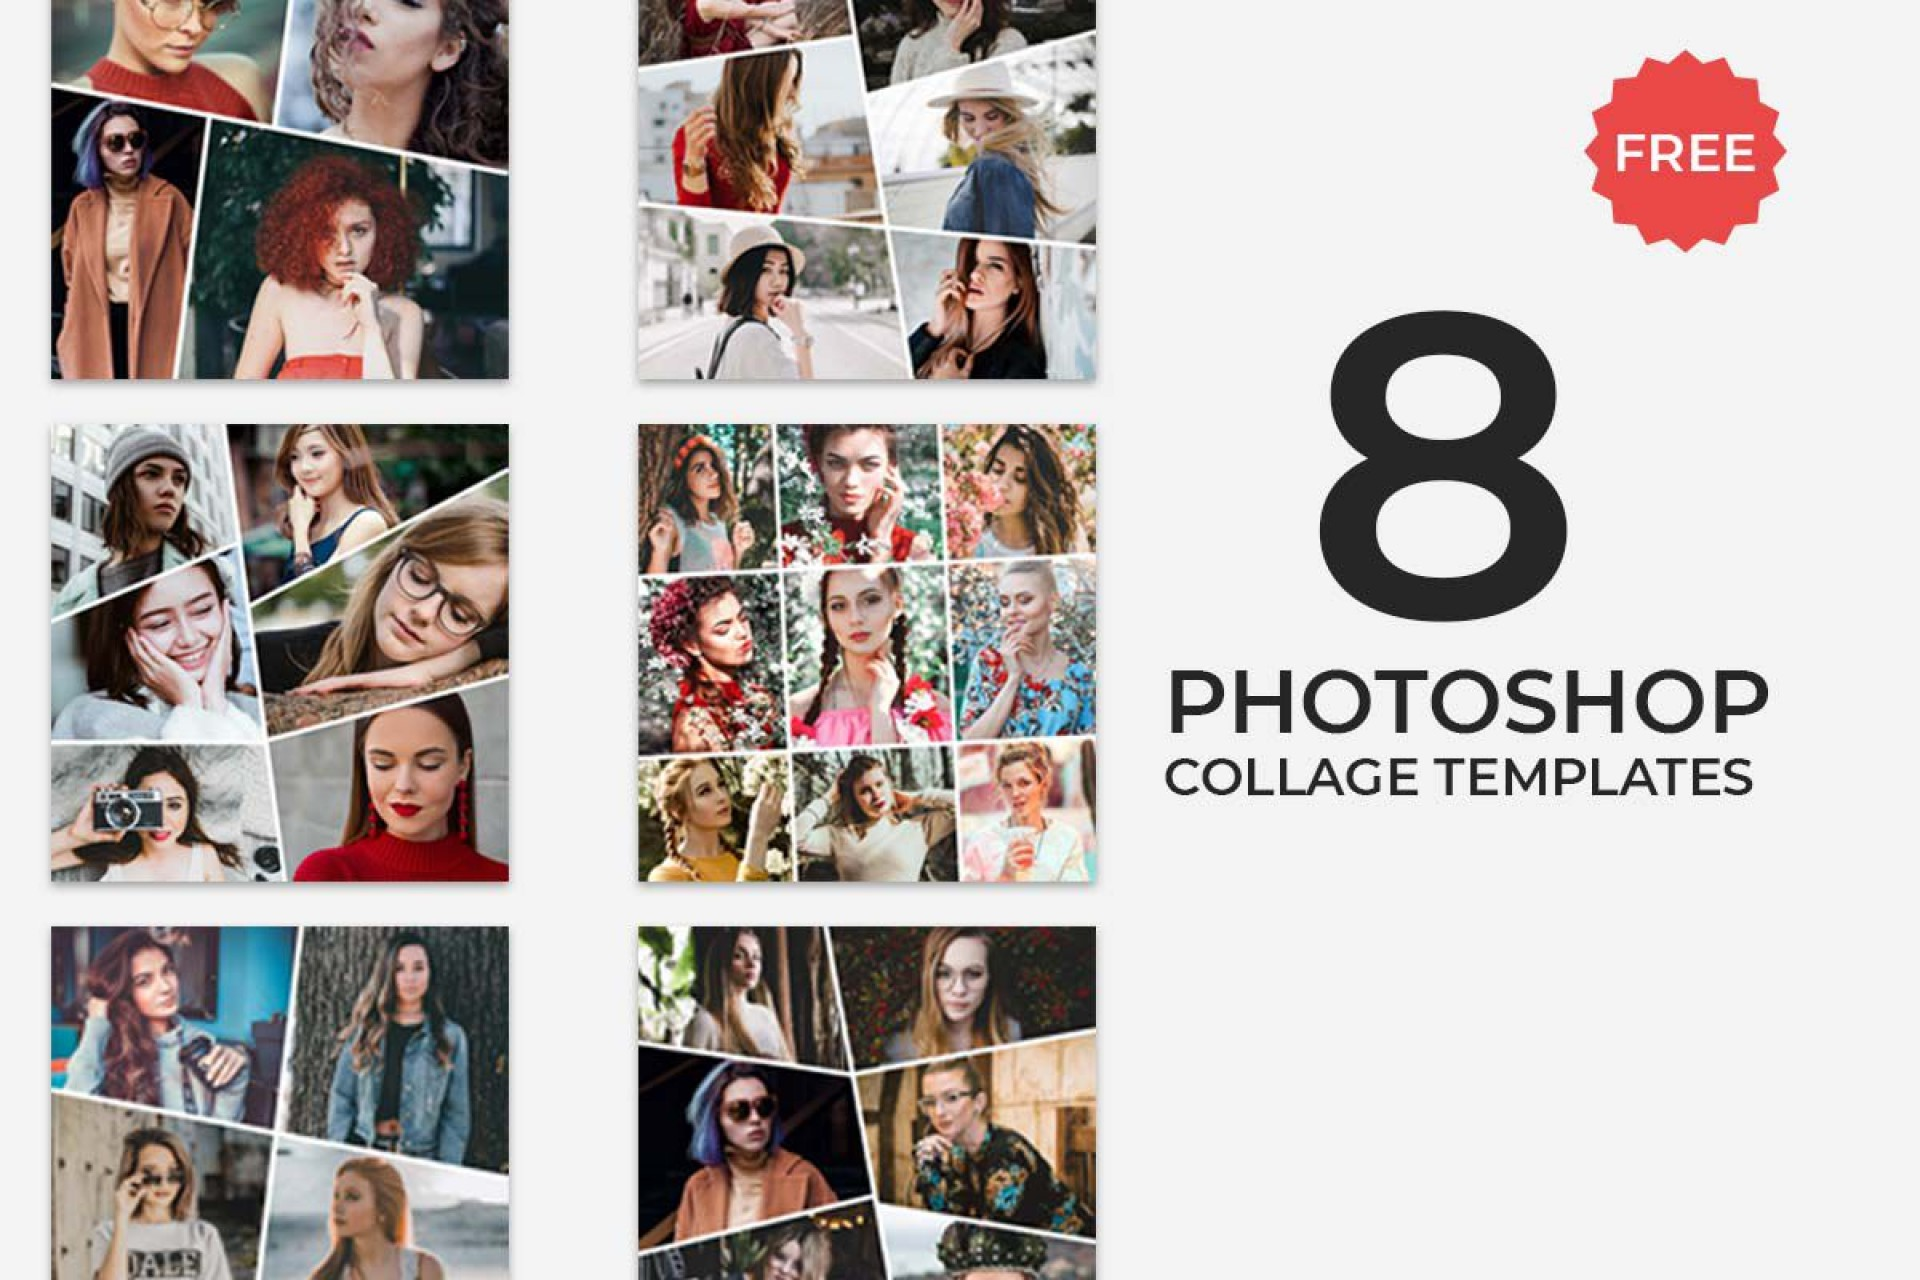 001 Wonderful Free Photo Collage Template Psd Idea  Photoshop Download Heart Shaped For Element1920